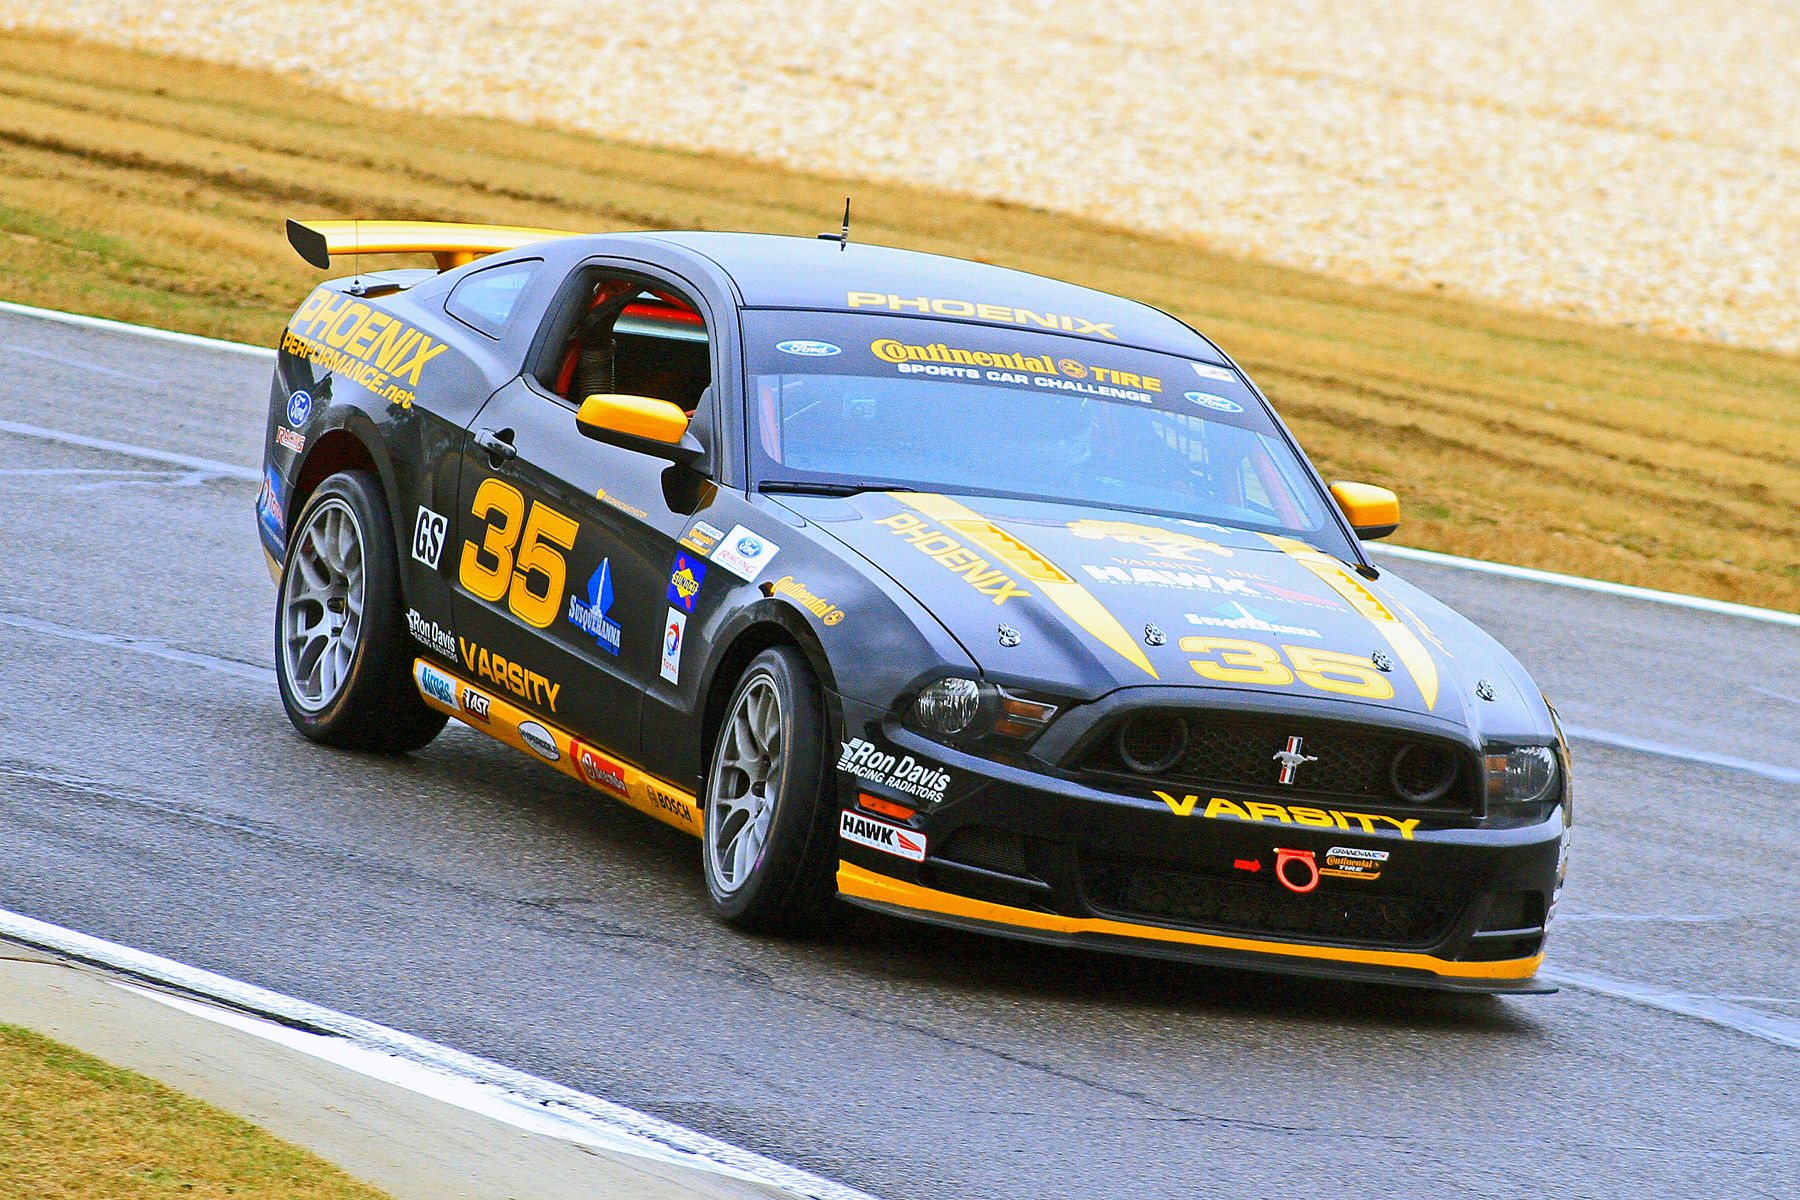 | Downhill turning into the apex at Barber Motorsports Park on their fresh Continental Tires.